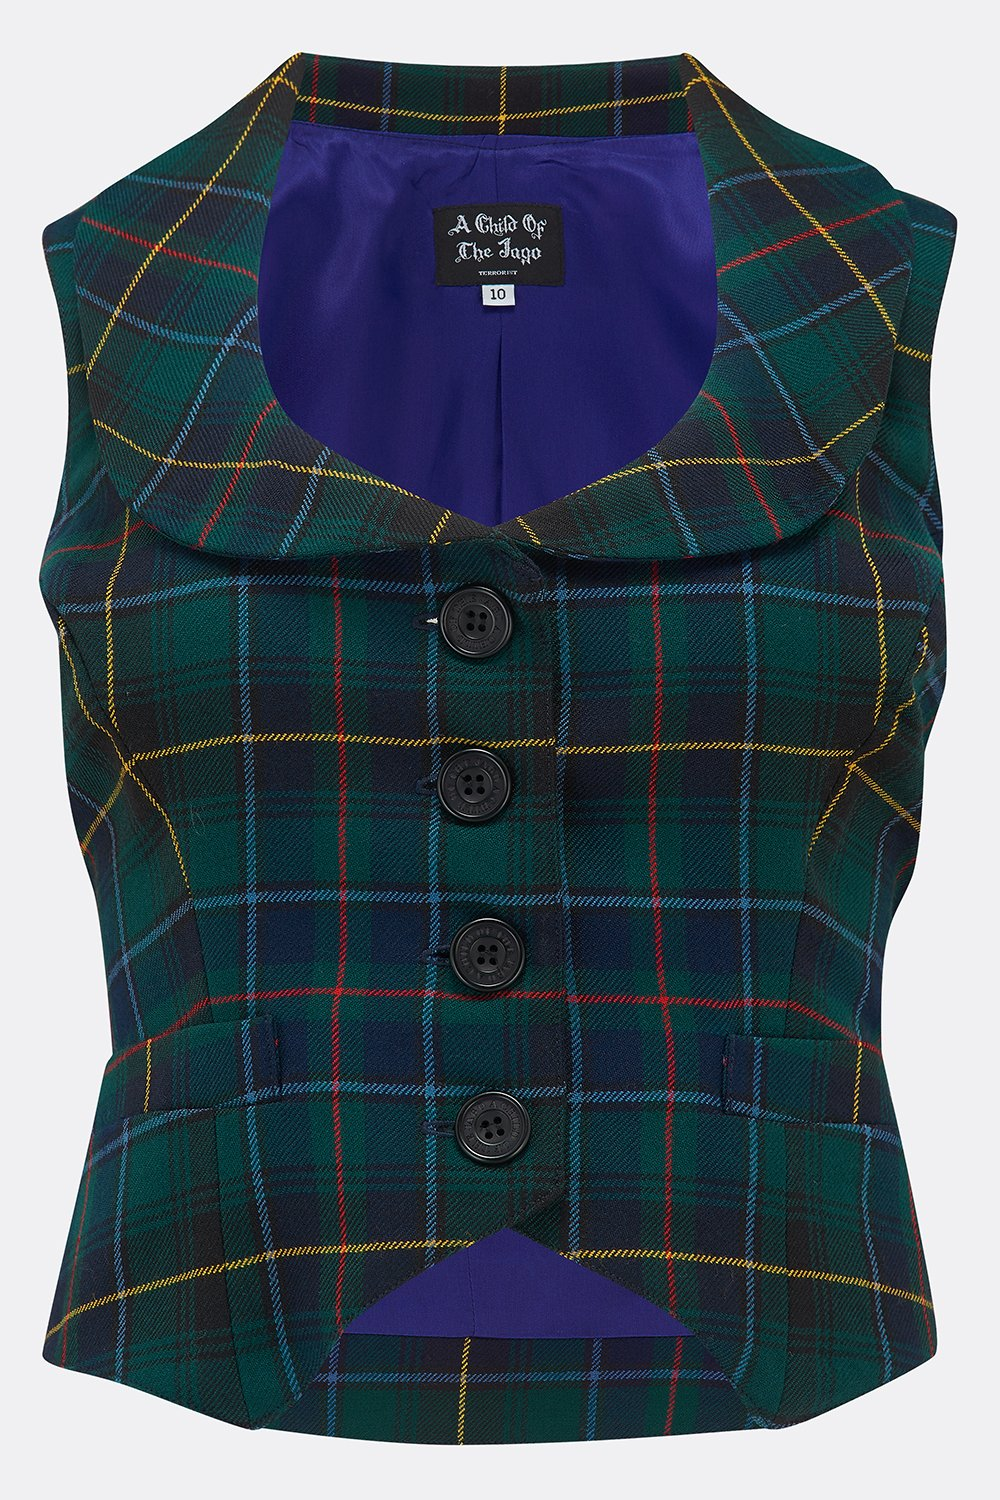 ROXANA WAISTCOAT IN NAVY GREEN CHECK-womenswear-A Child Of The Jago